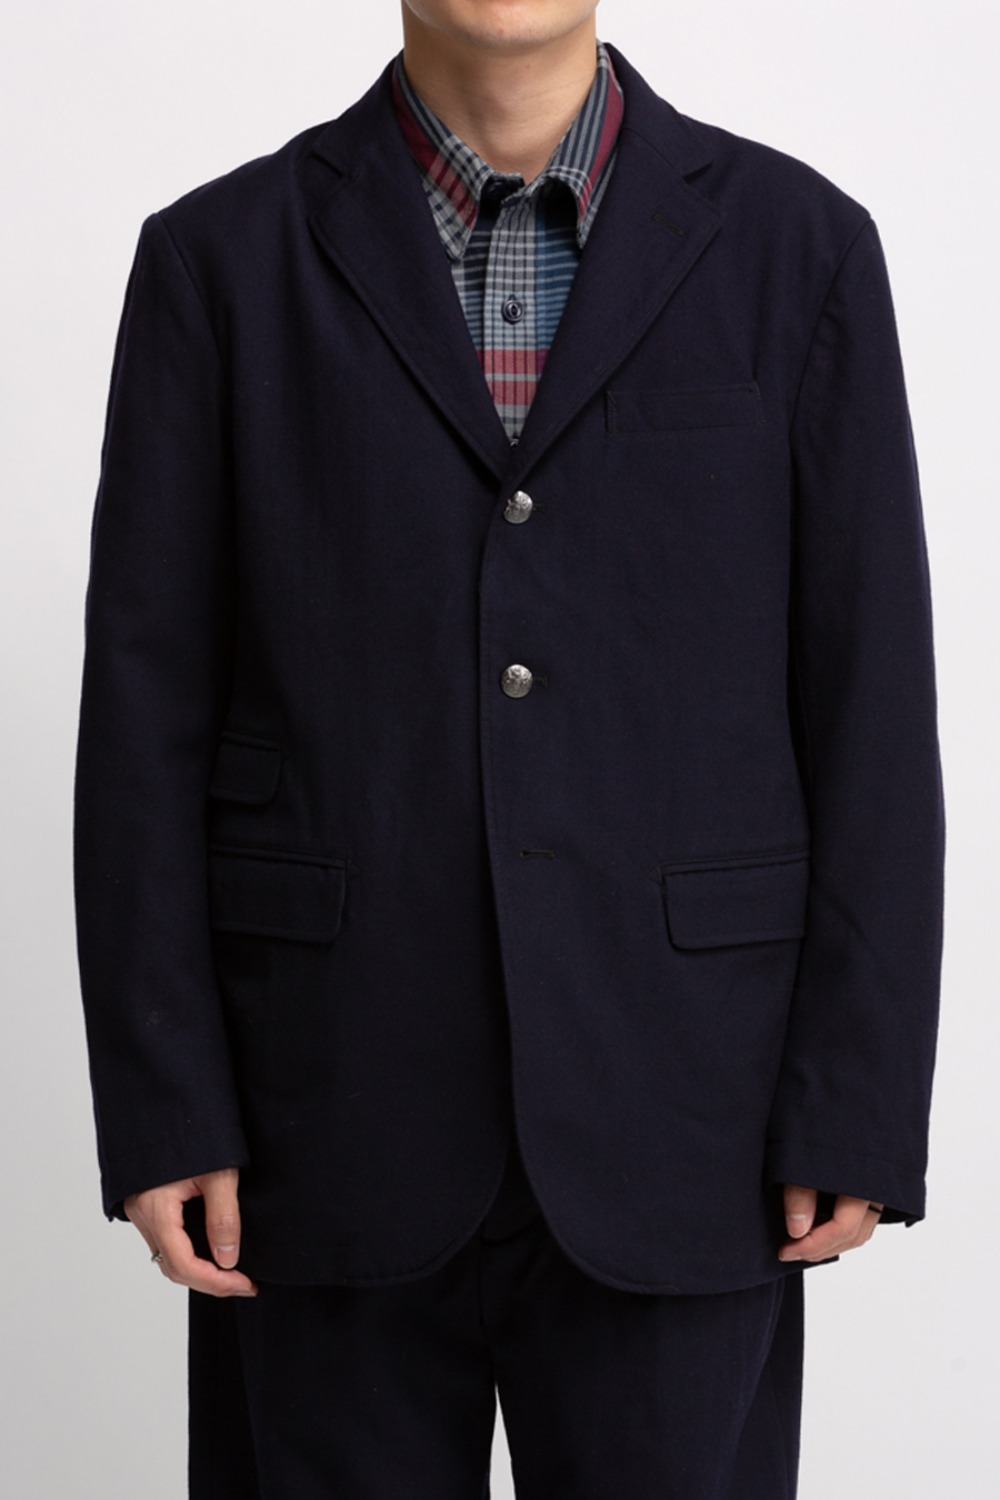 LAWRENCE JACKET DARK NAVY WOOL UNIFORM SERGE